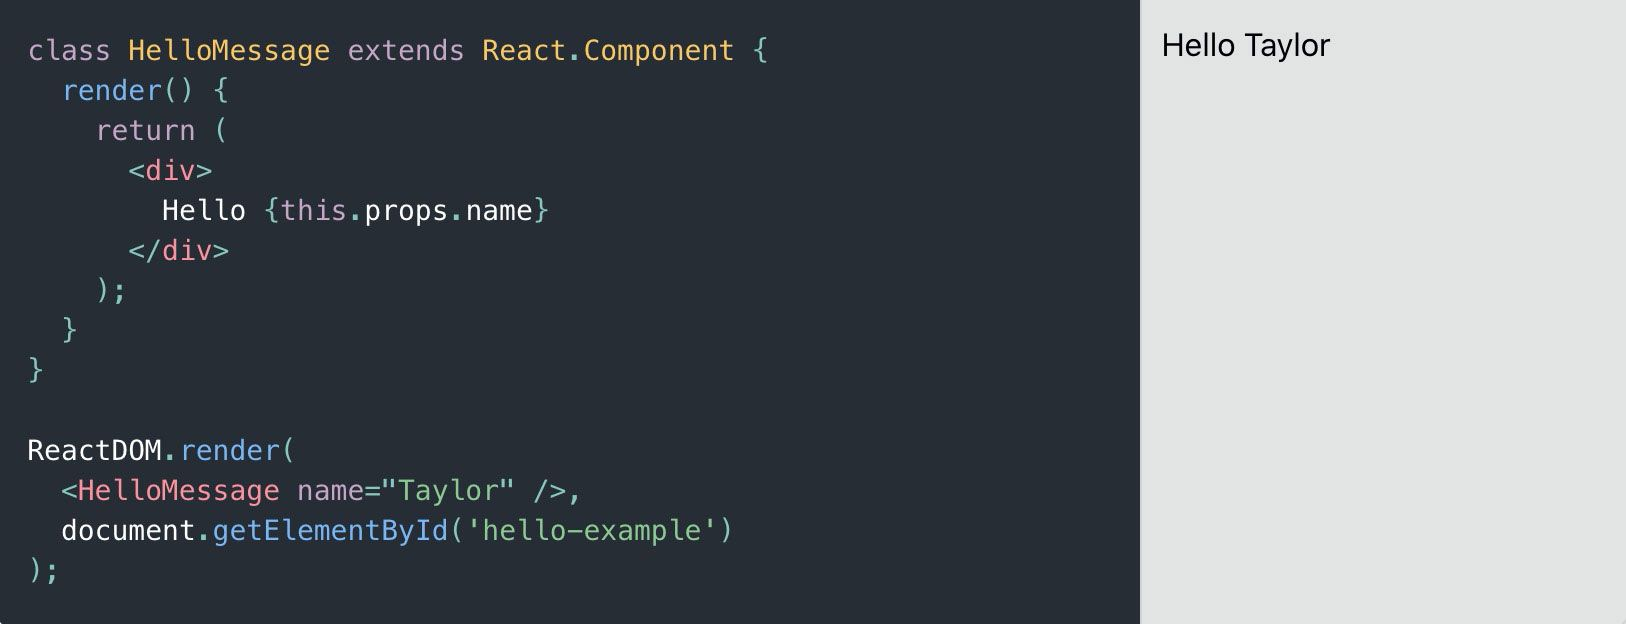 """A Simple Component"" example from https://reactjs.org/"